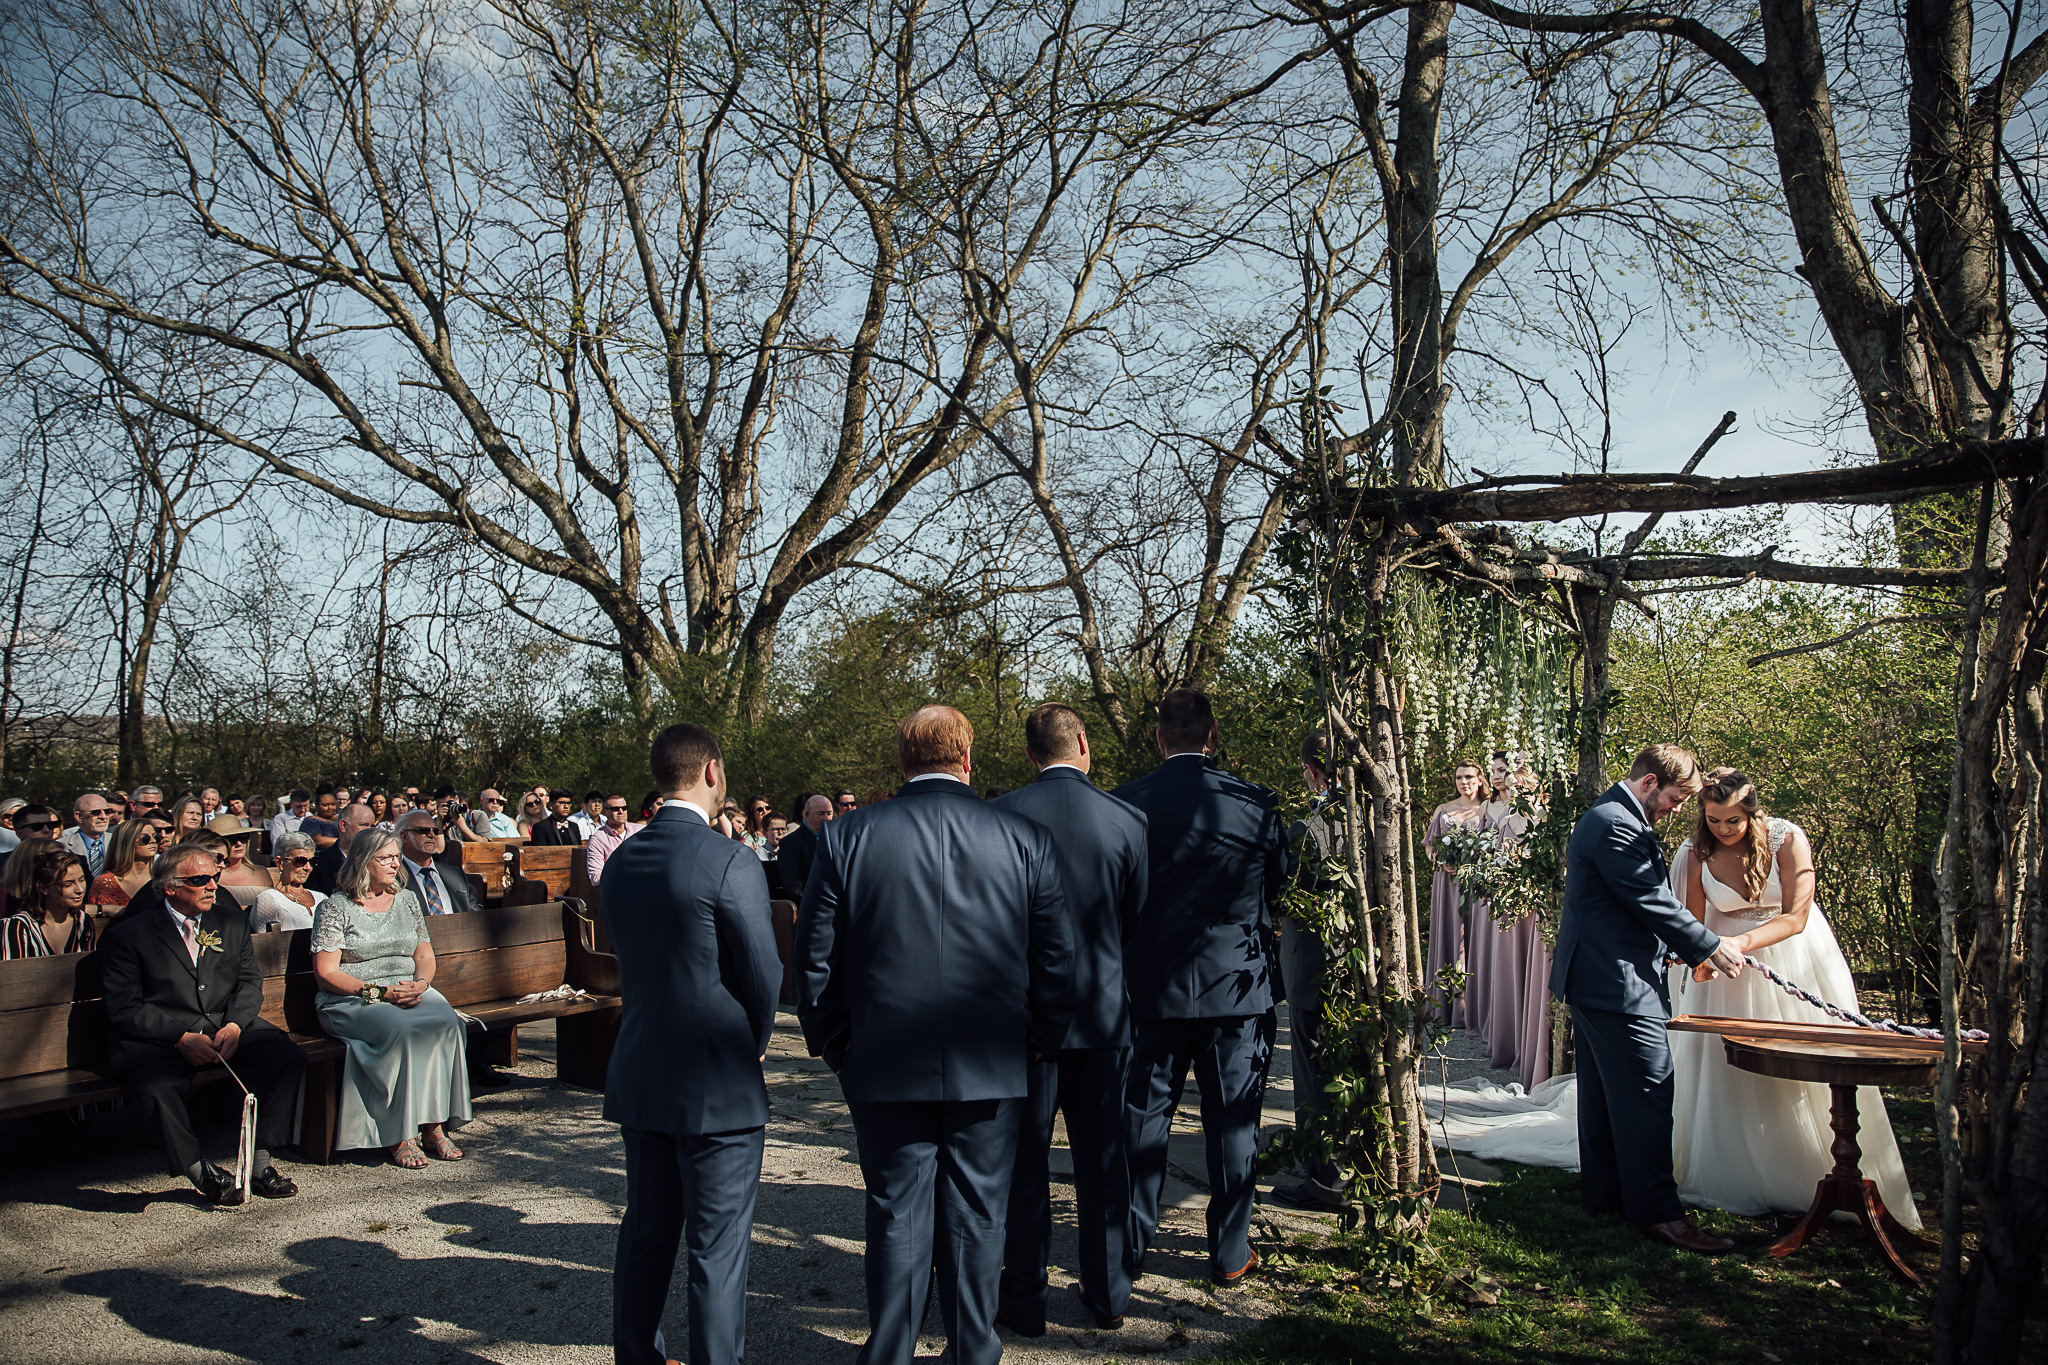 memphis-wedding-photographer-meadow-hill-farms-thewarmtharoundyou (43 of 93).jpg